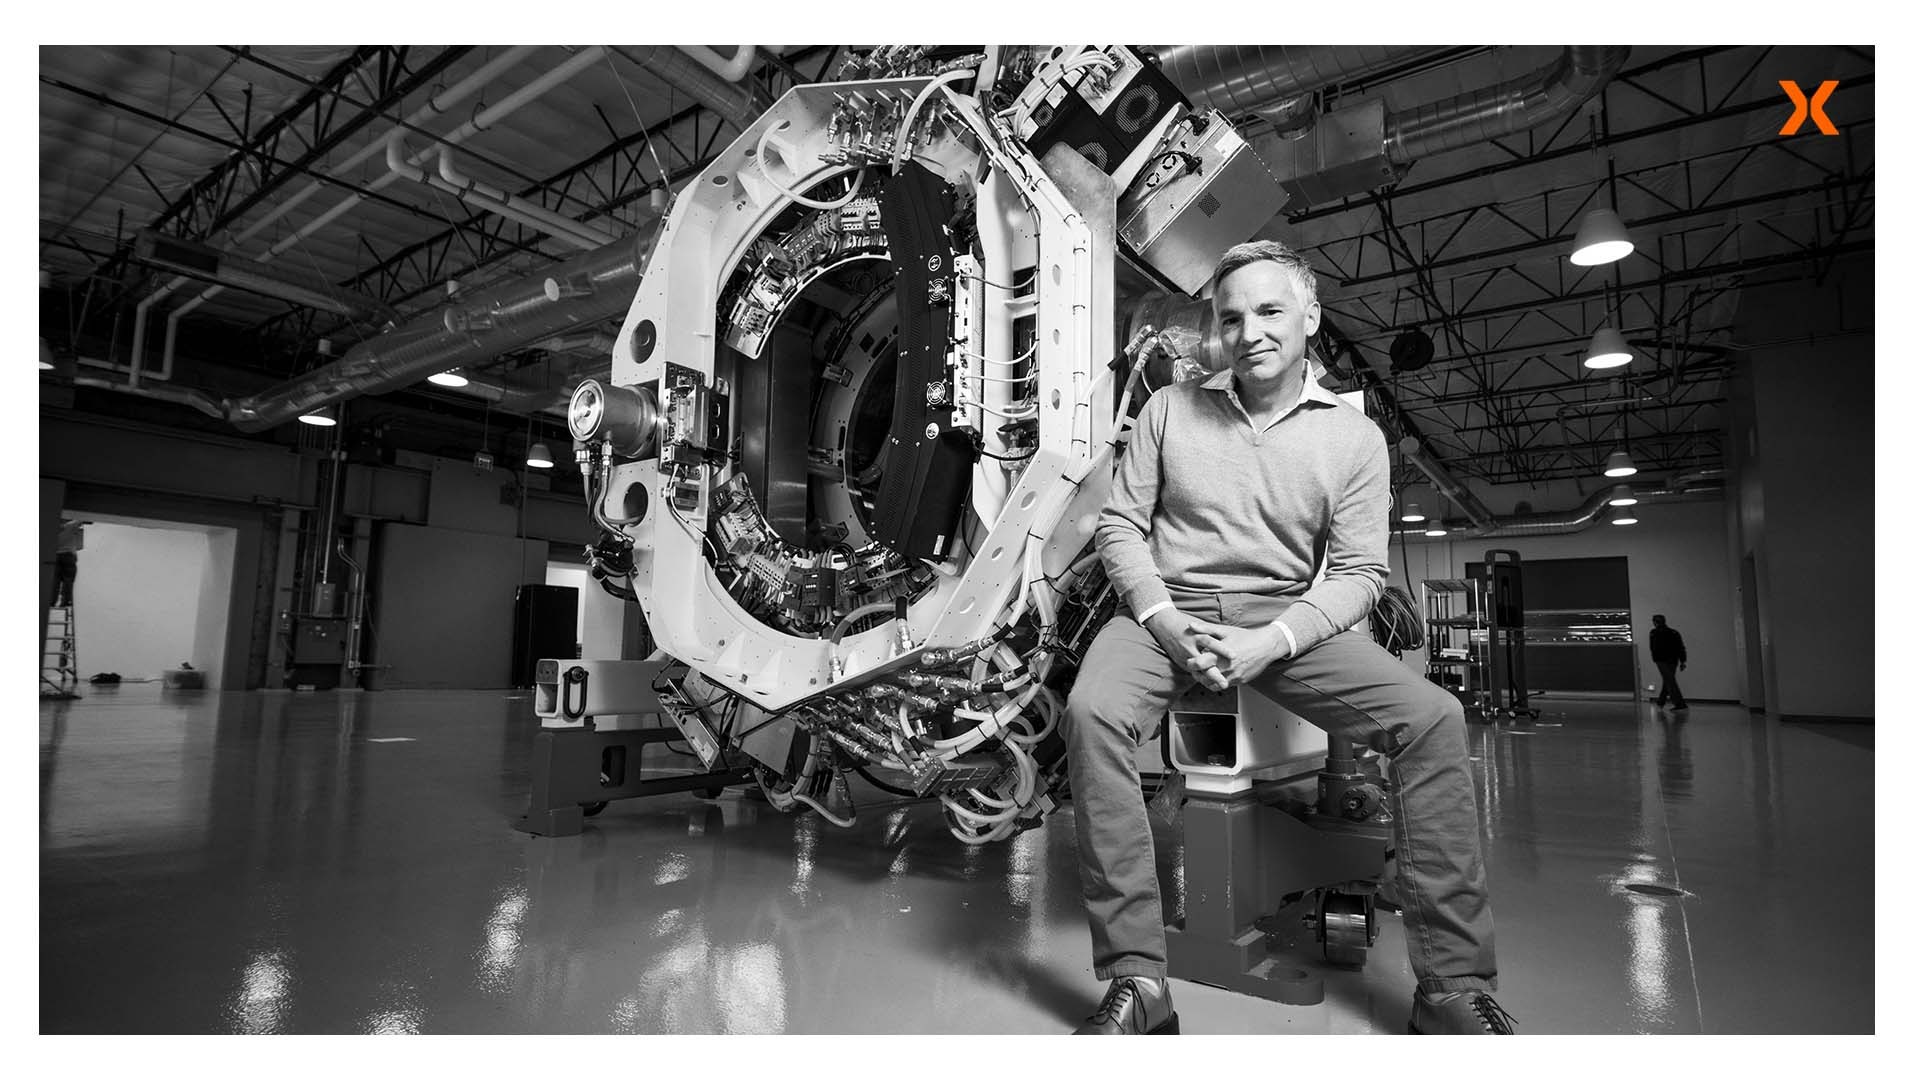 todd powell sitting in front of reflexion machine